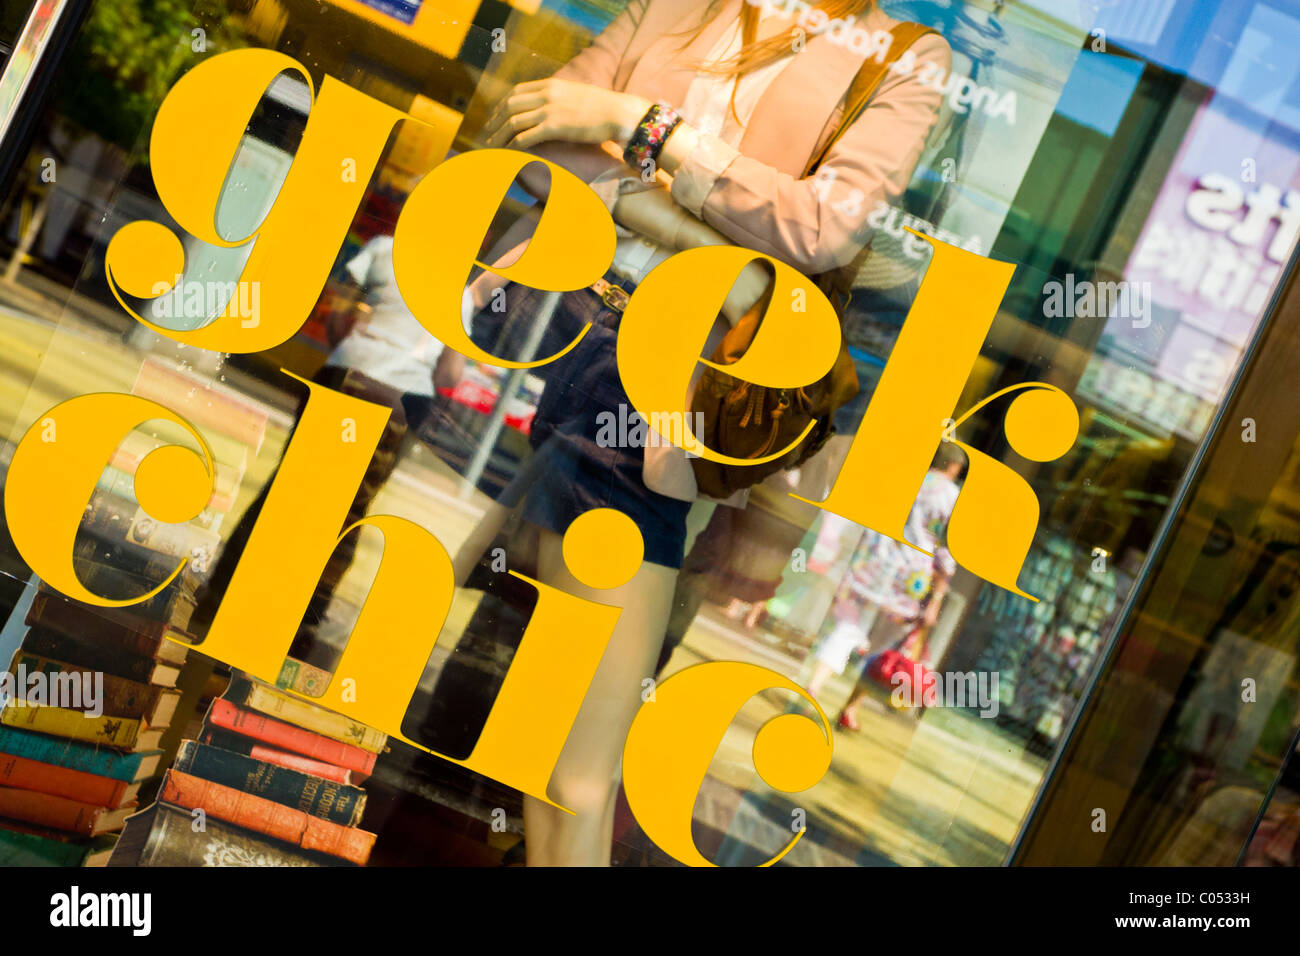 Shop window sign, geek chic - Stock Image